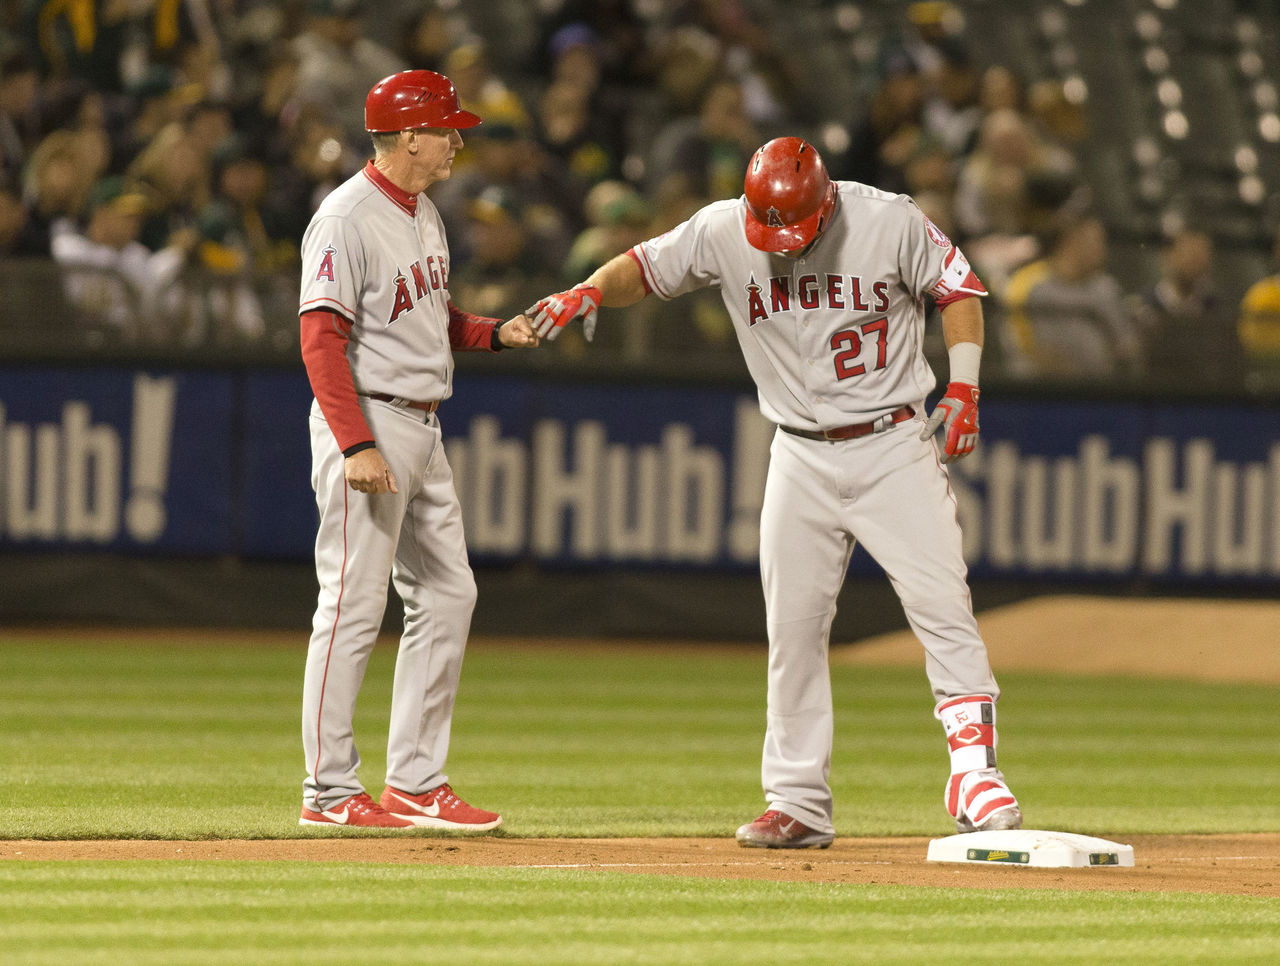 Cropped_2017-04-05t041754z_308826661_nocid_rtrmadp_3_mlb-los-angeles-angels-at-oakland-athletics